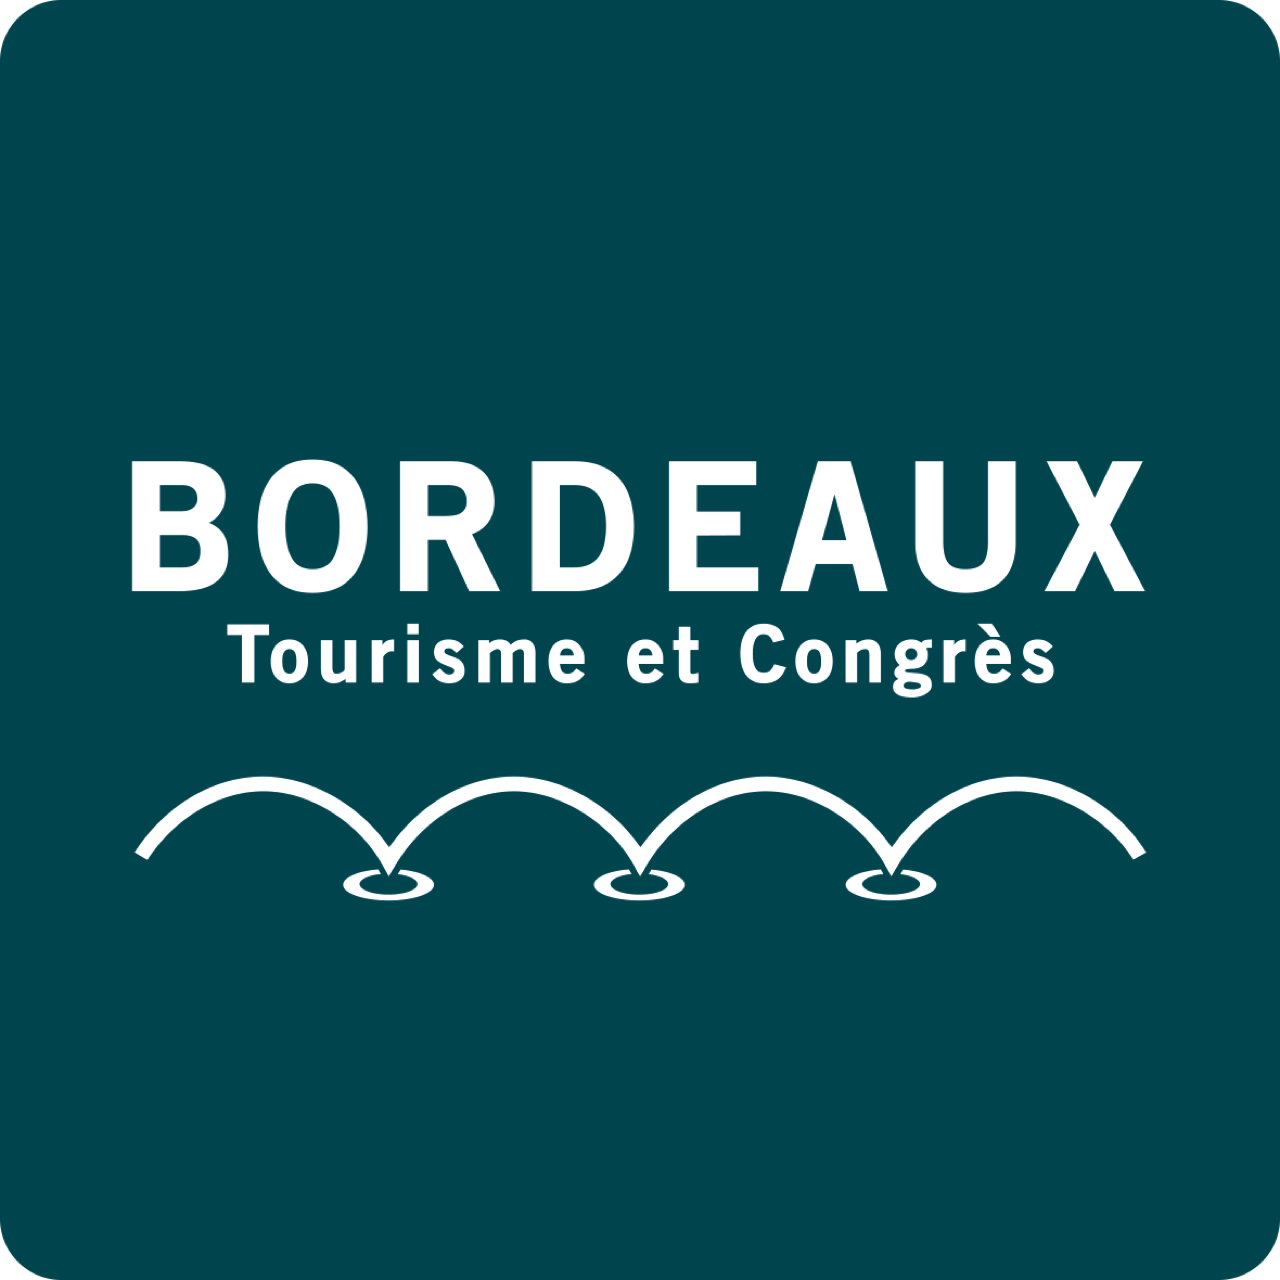 office de tourisme bordeaux presse